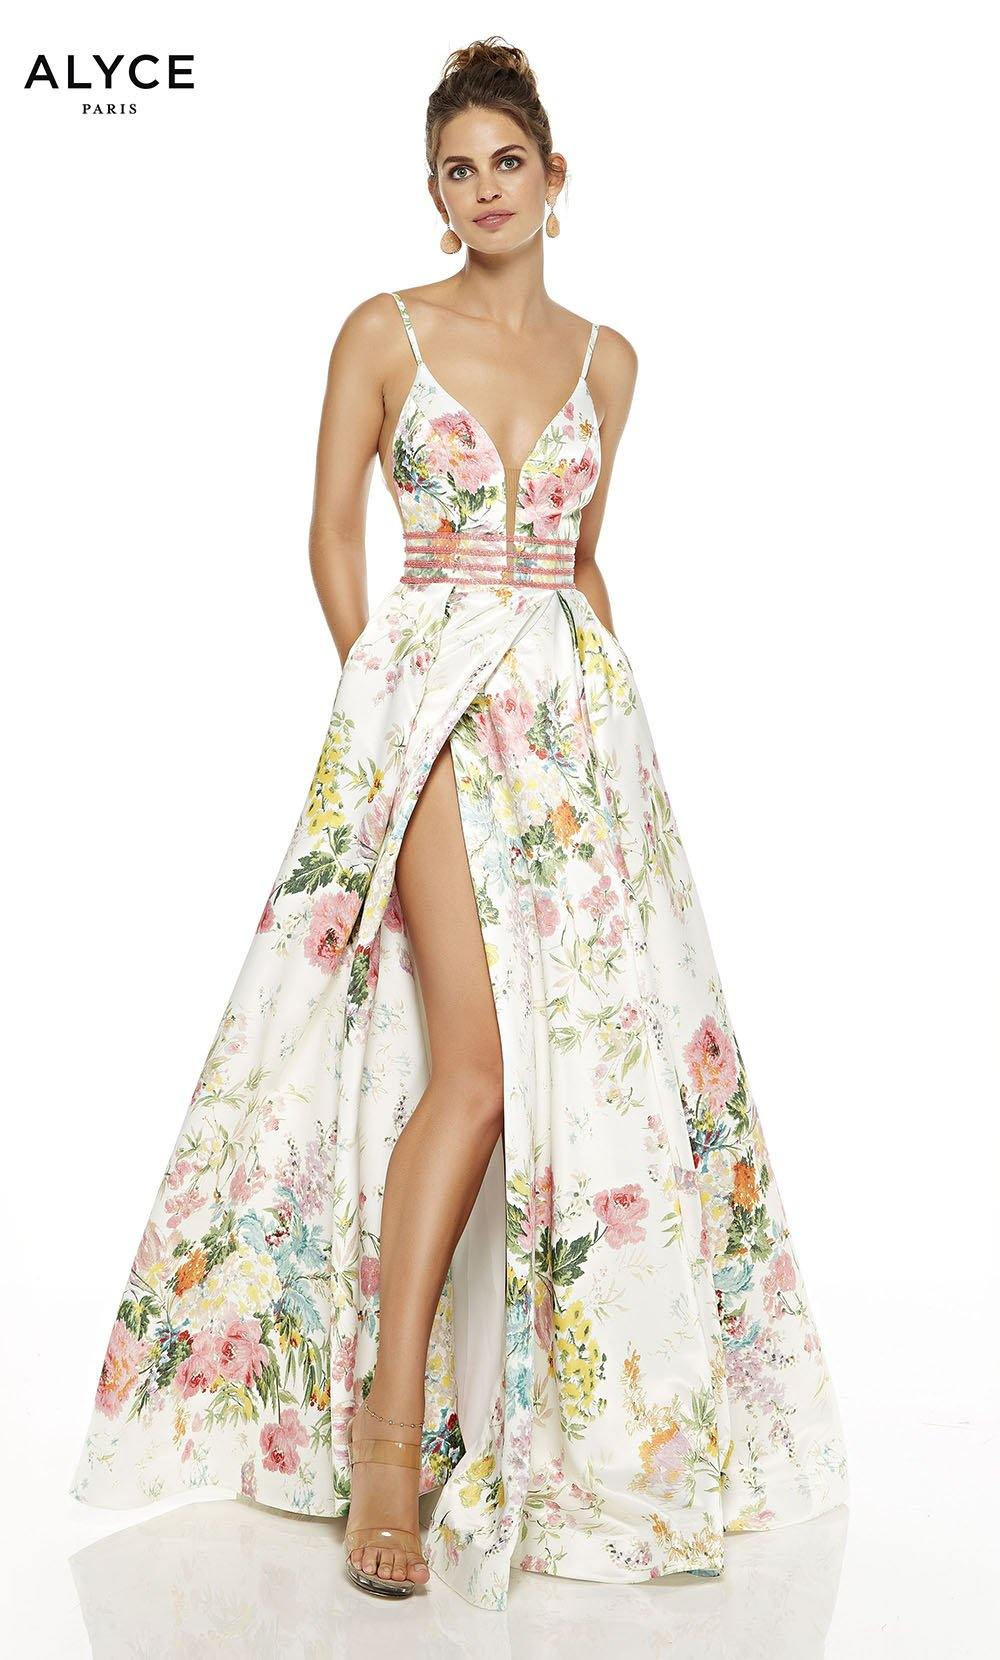 Wildflower formal dress with  floral print and high slit